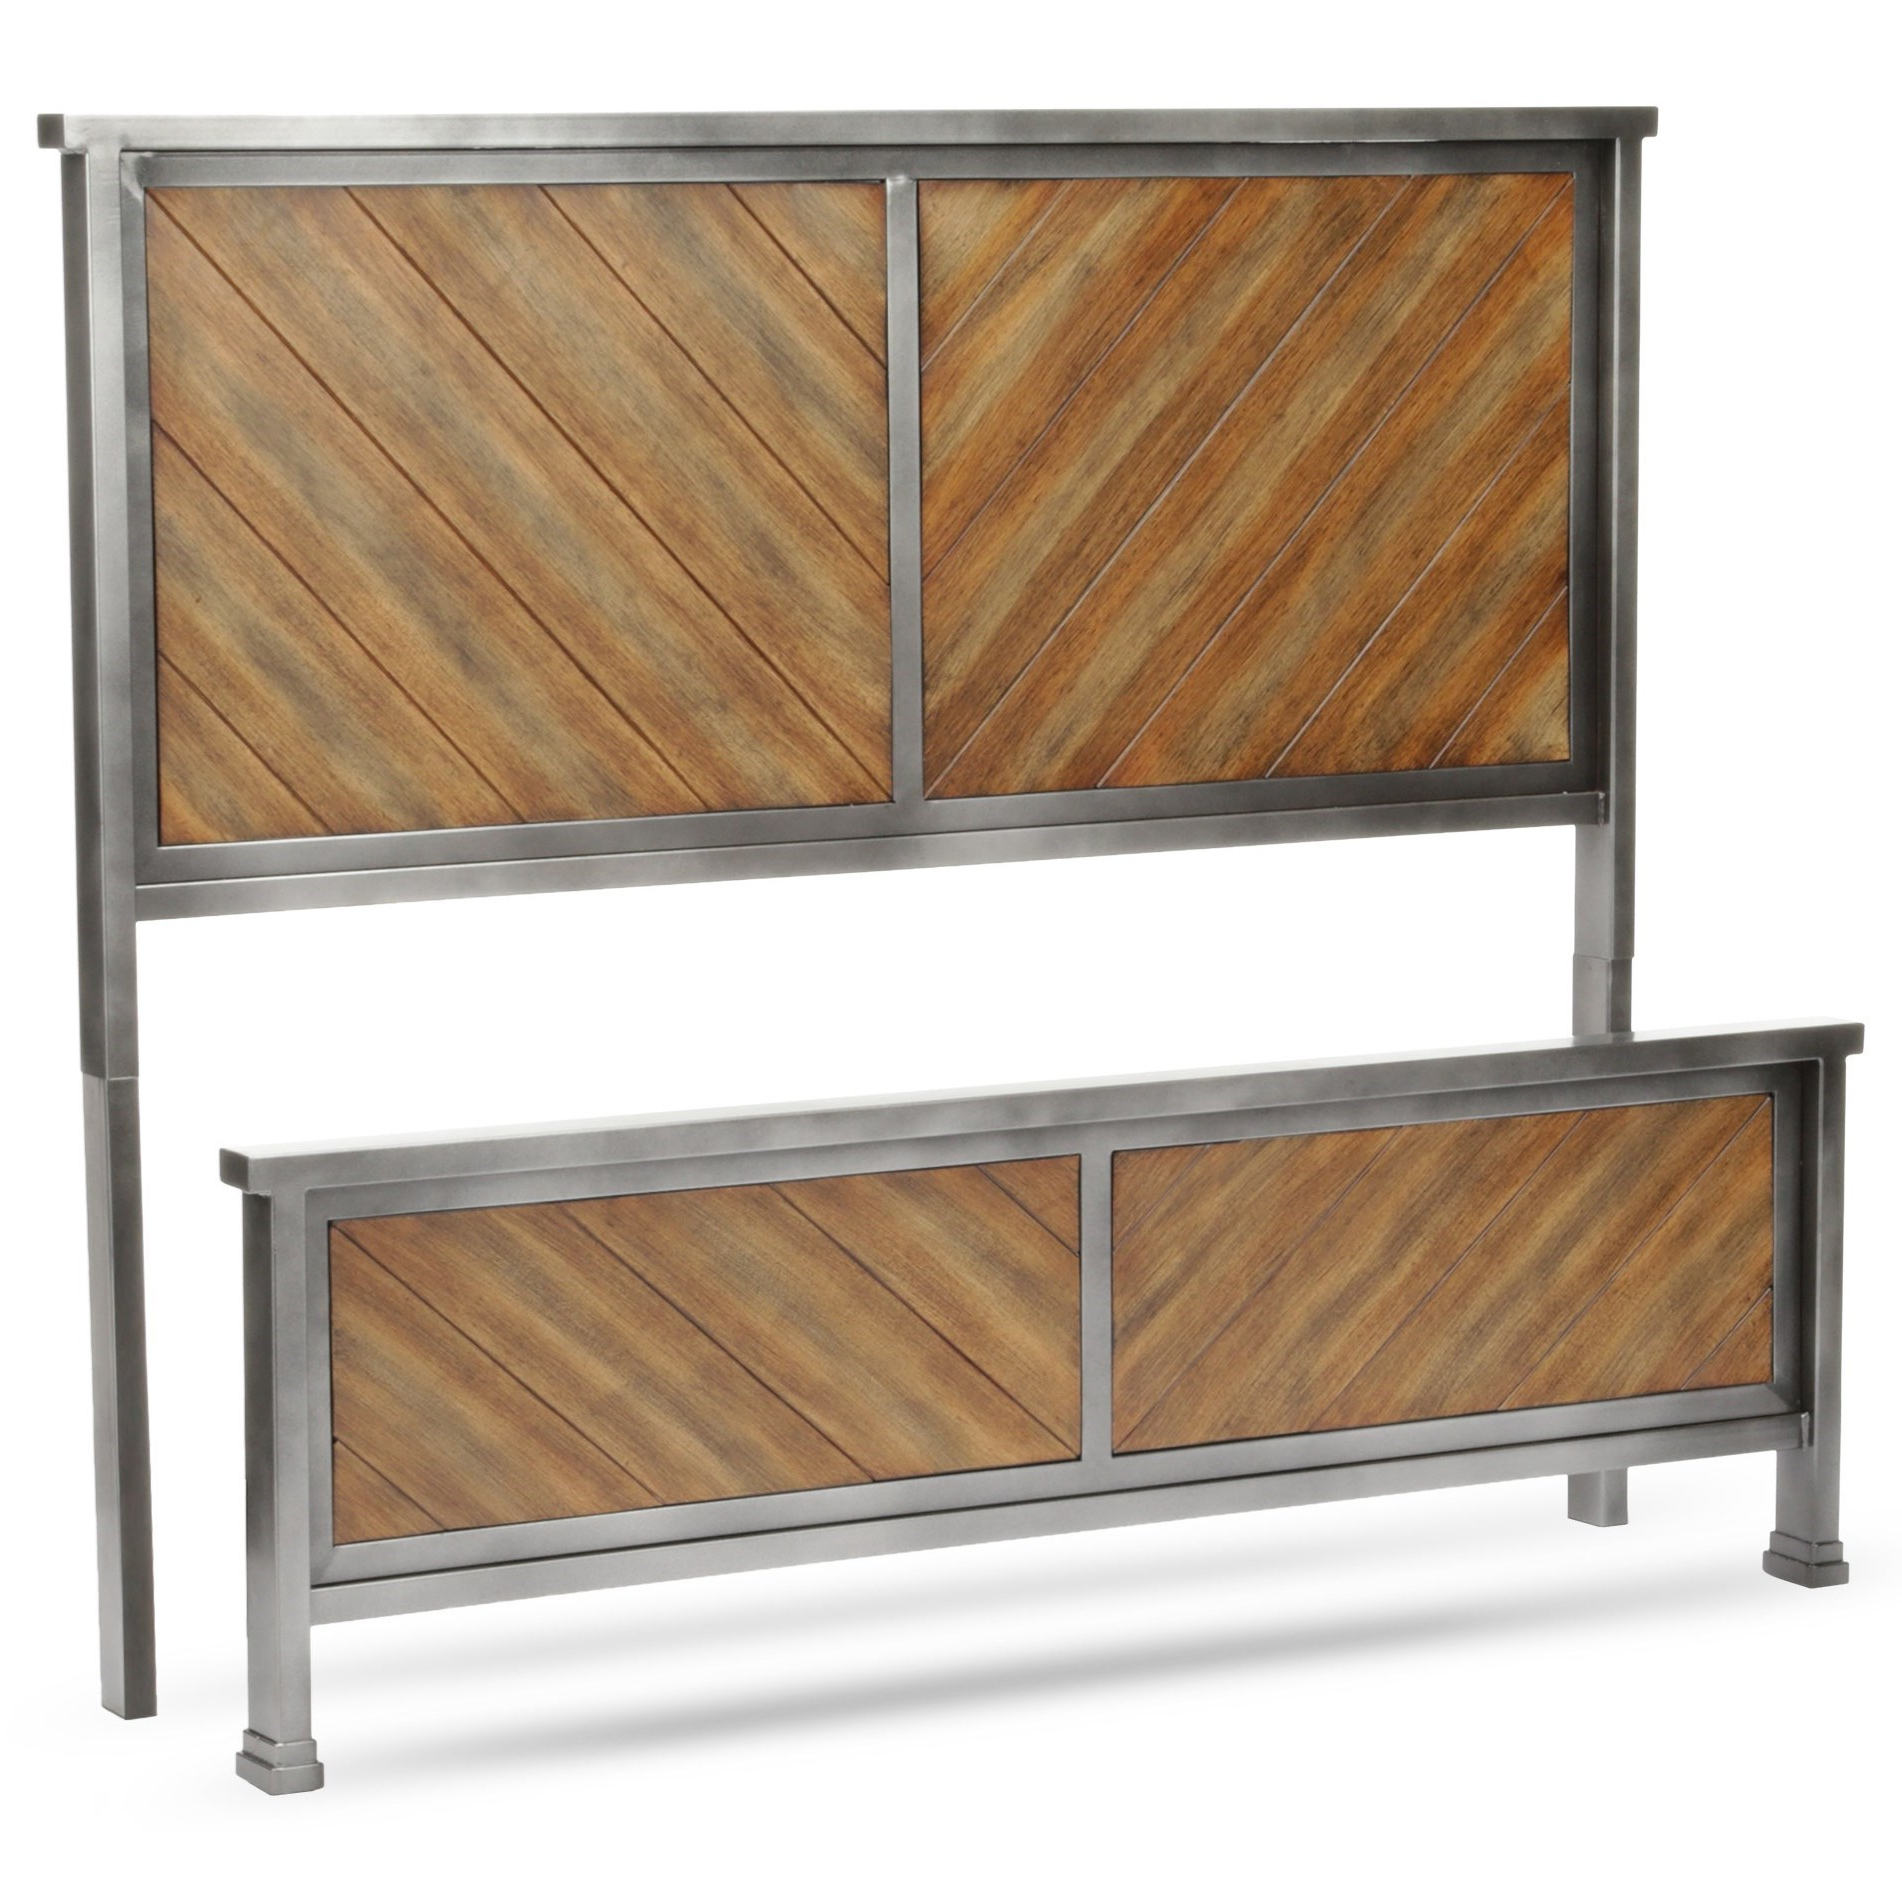 Reclaimed Sideboards With Metal Panel Within Most Recently Released Fashion Bed Group Braden Braden Full Headboard And Footboard With (Gallery 15 of 20)